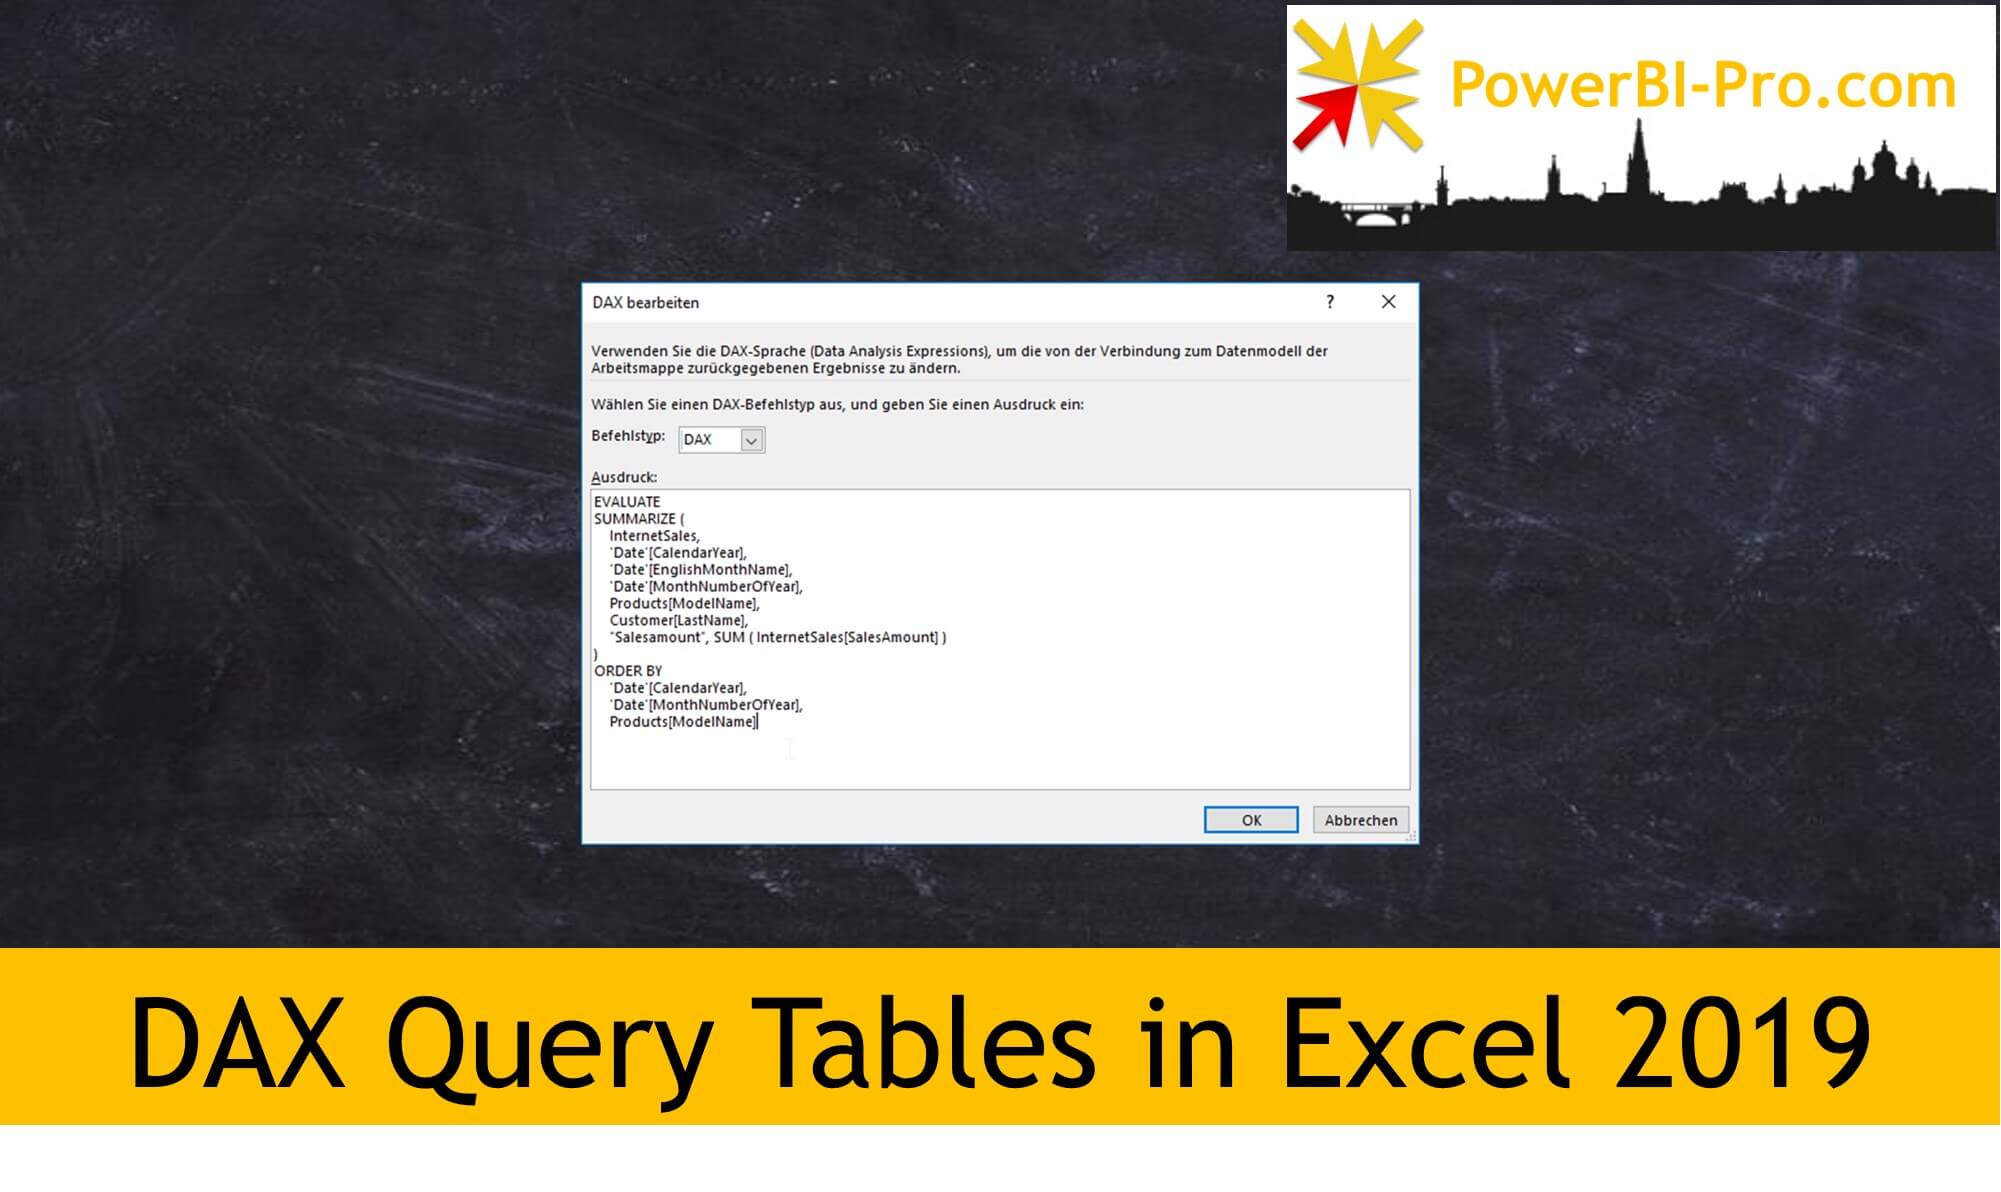 DAX Query Tables in Excel 2019 - Power BI